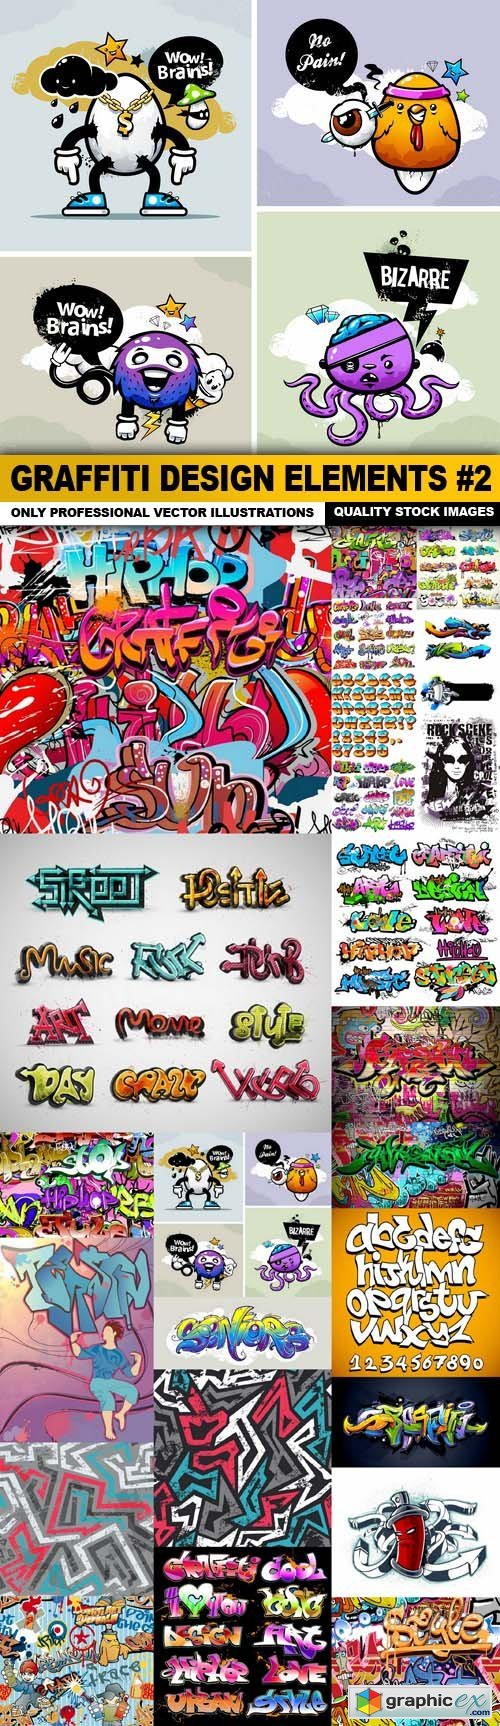 Graffiti Design Elements #2